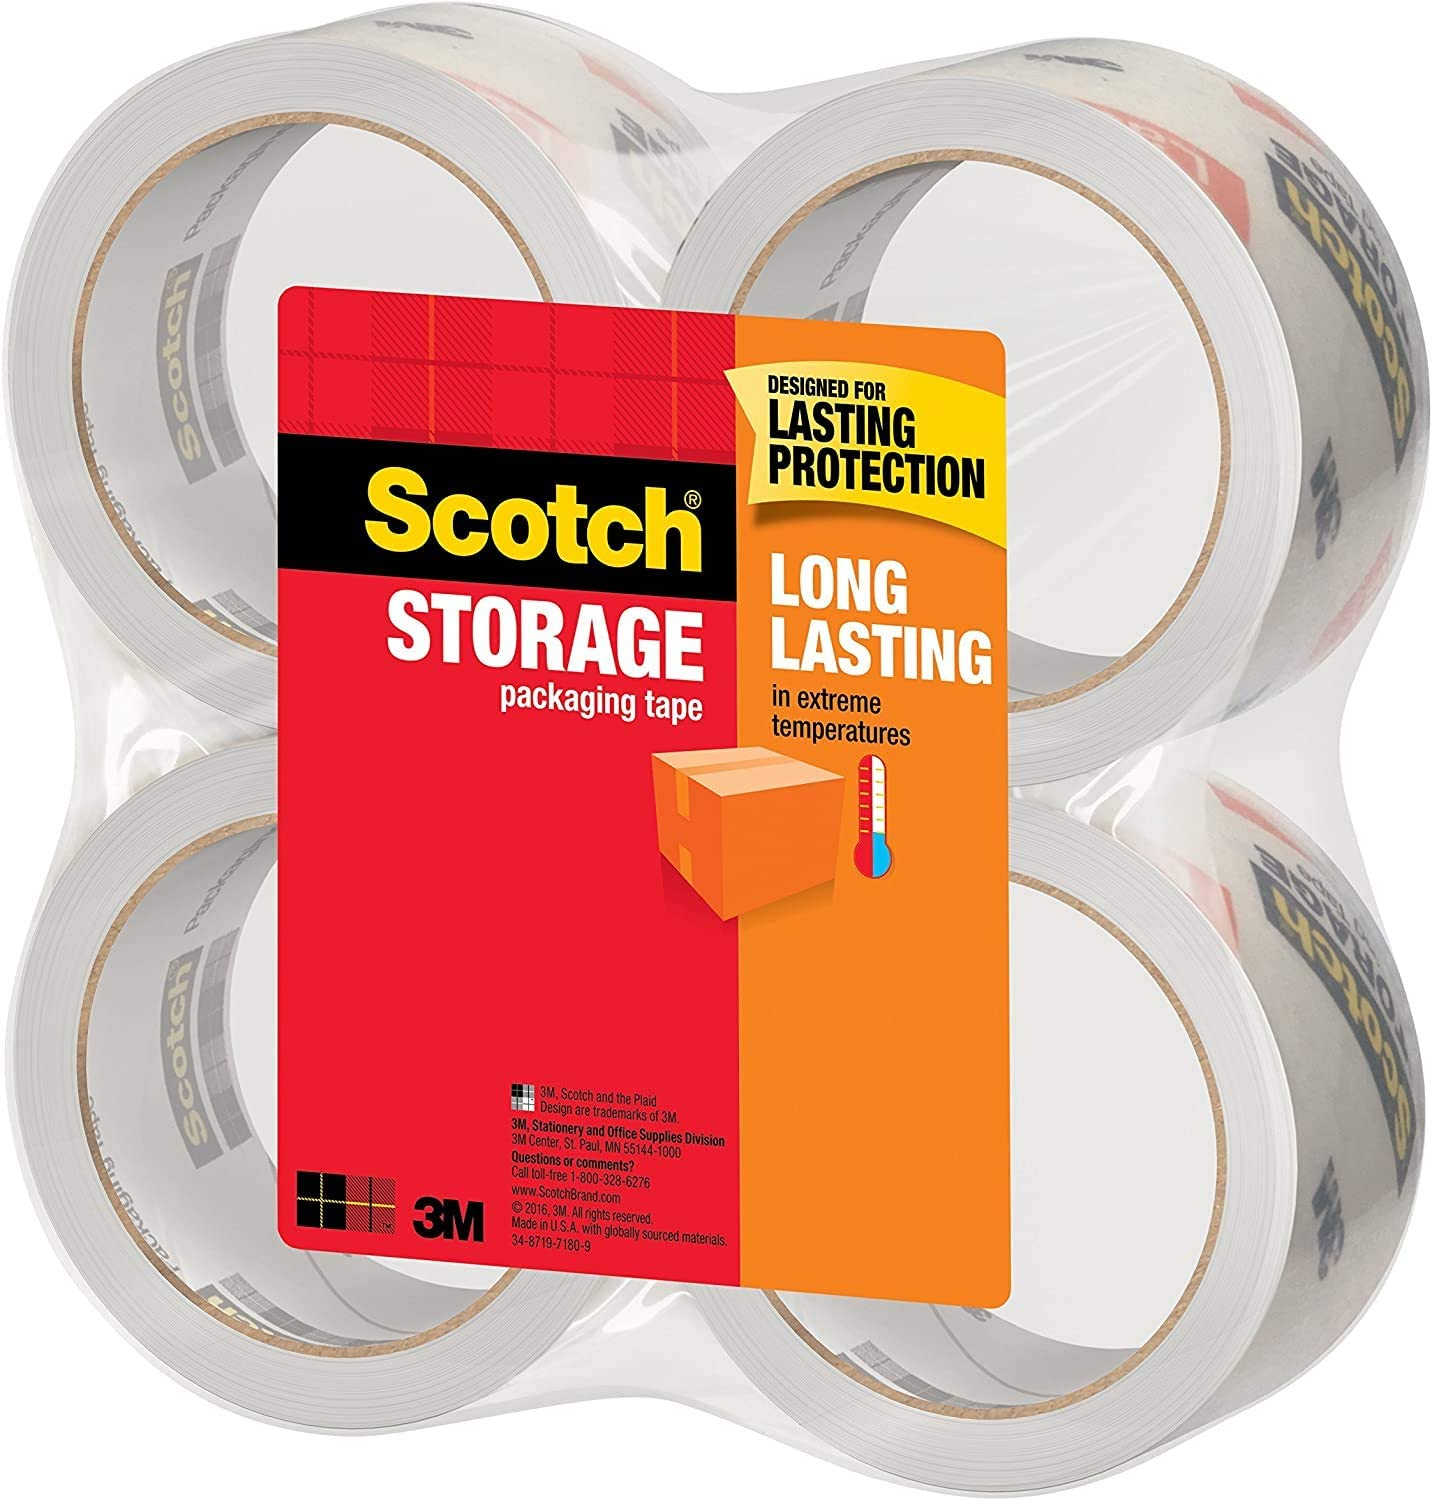 Scotch 3650-4 Long Lasting Storage Packaging Tape 4 Rolls 1.88 Inches x 54.6 Yards